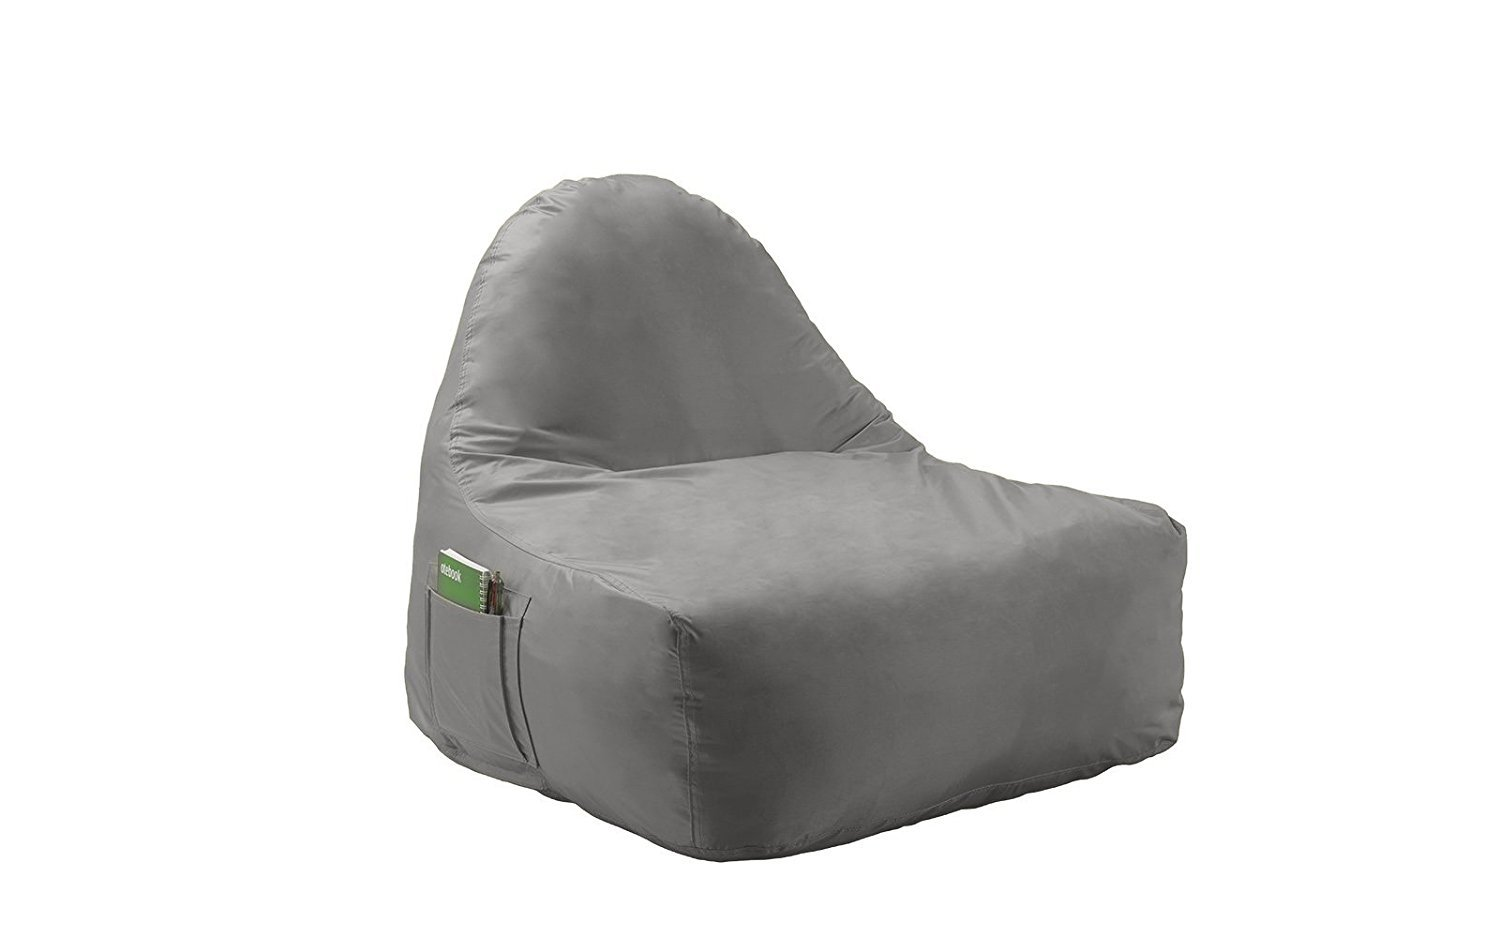 New 31  inch Lazy Lounge Compressed Foam Waterproof Gaming Chair Bean Bag with Pockets for Kids (Grey) - Walmart.com  sc 1 st  Walmart & New 31